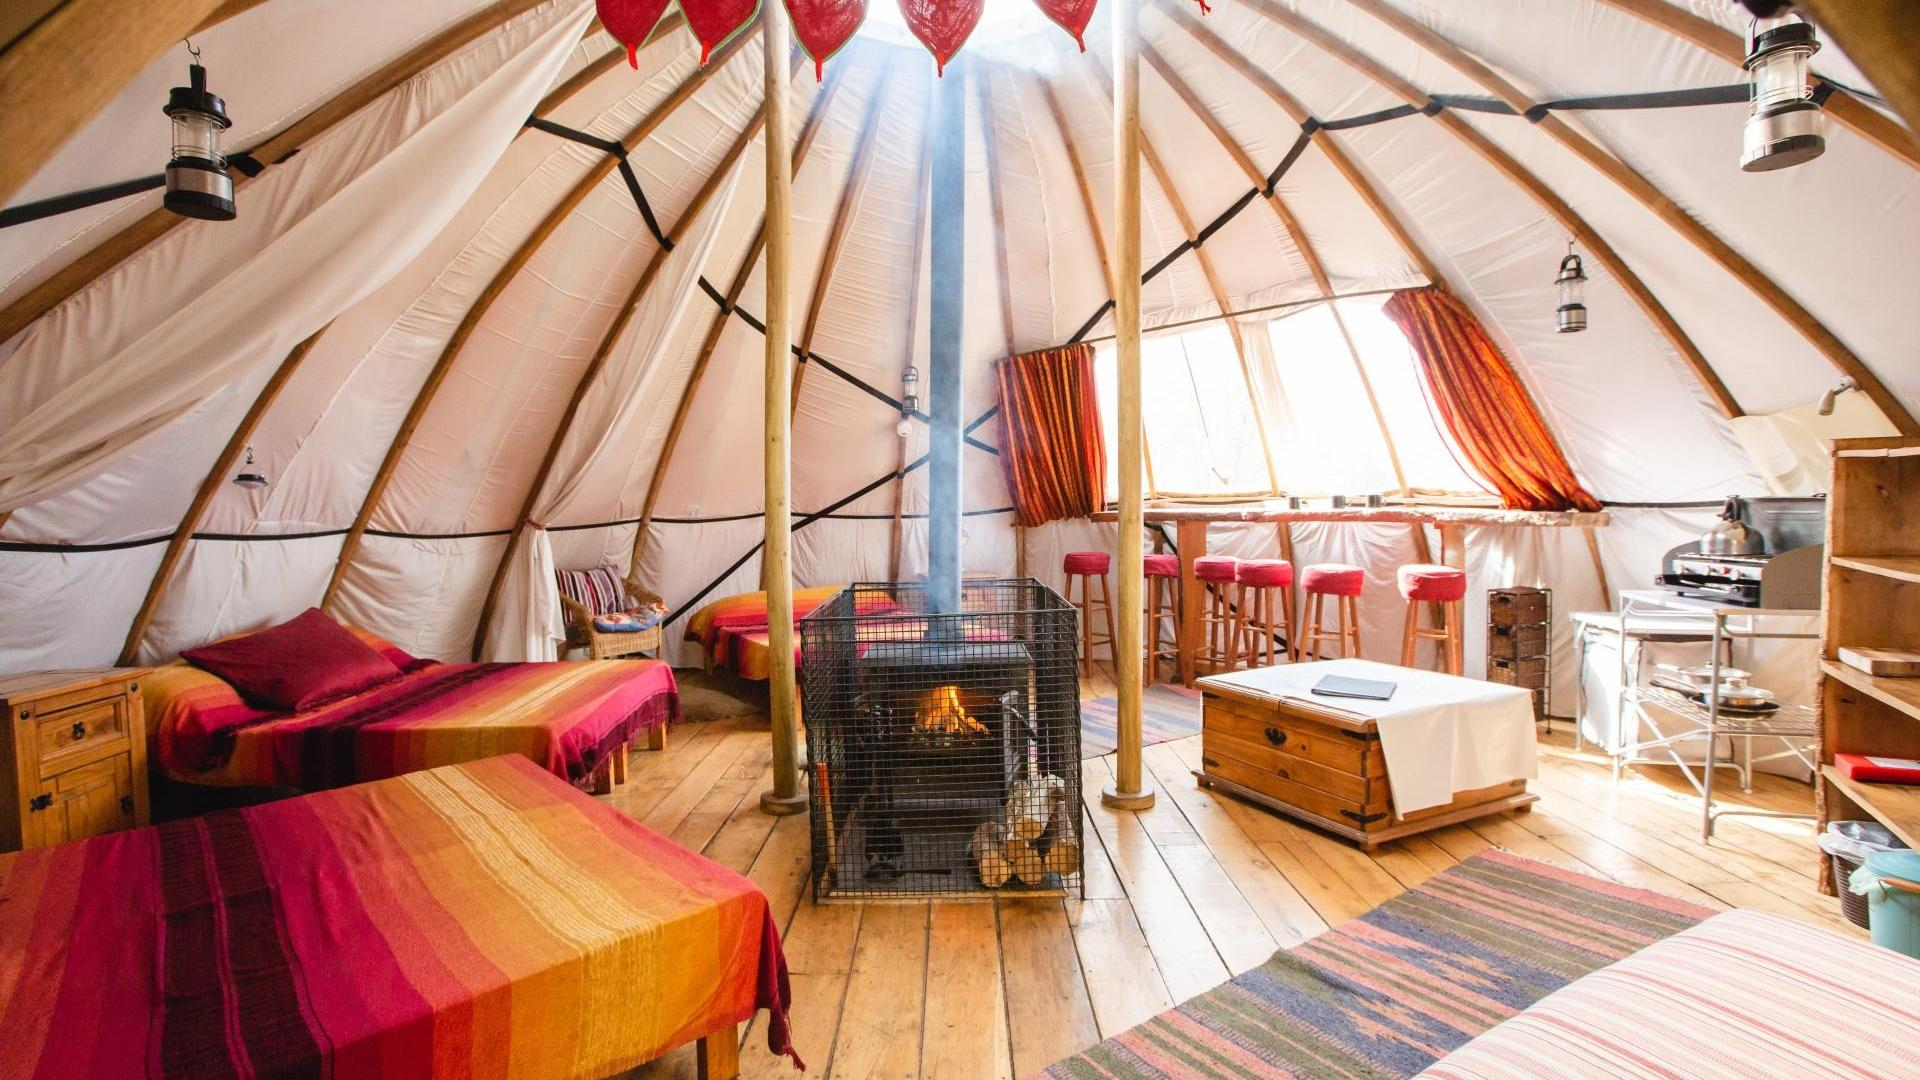 1 Bedroom Yurt in Wales, United Kingdom